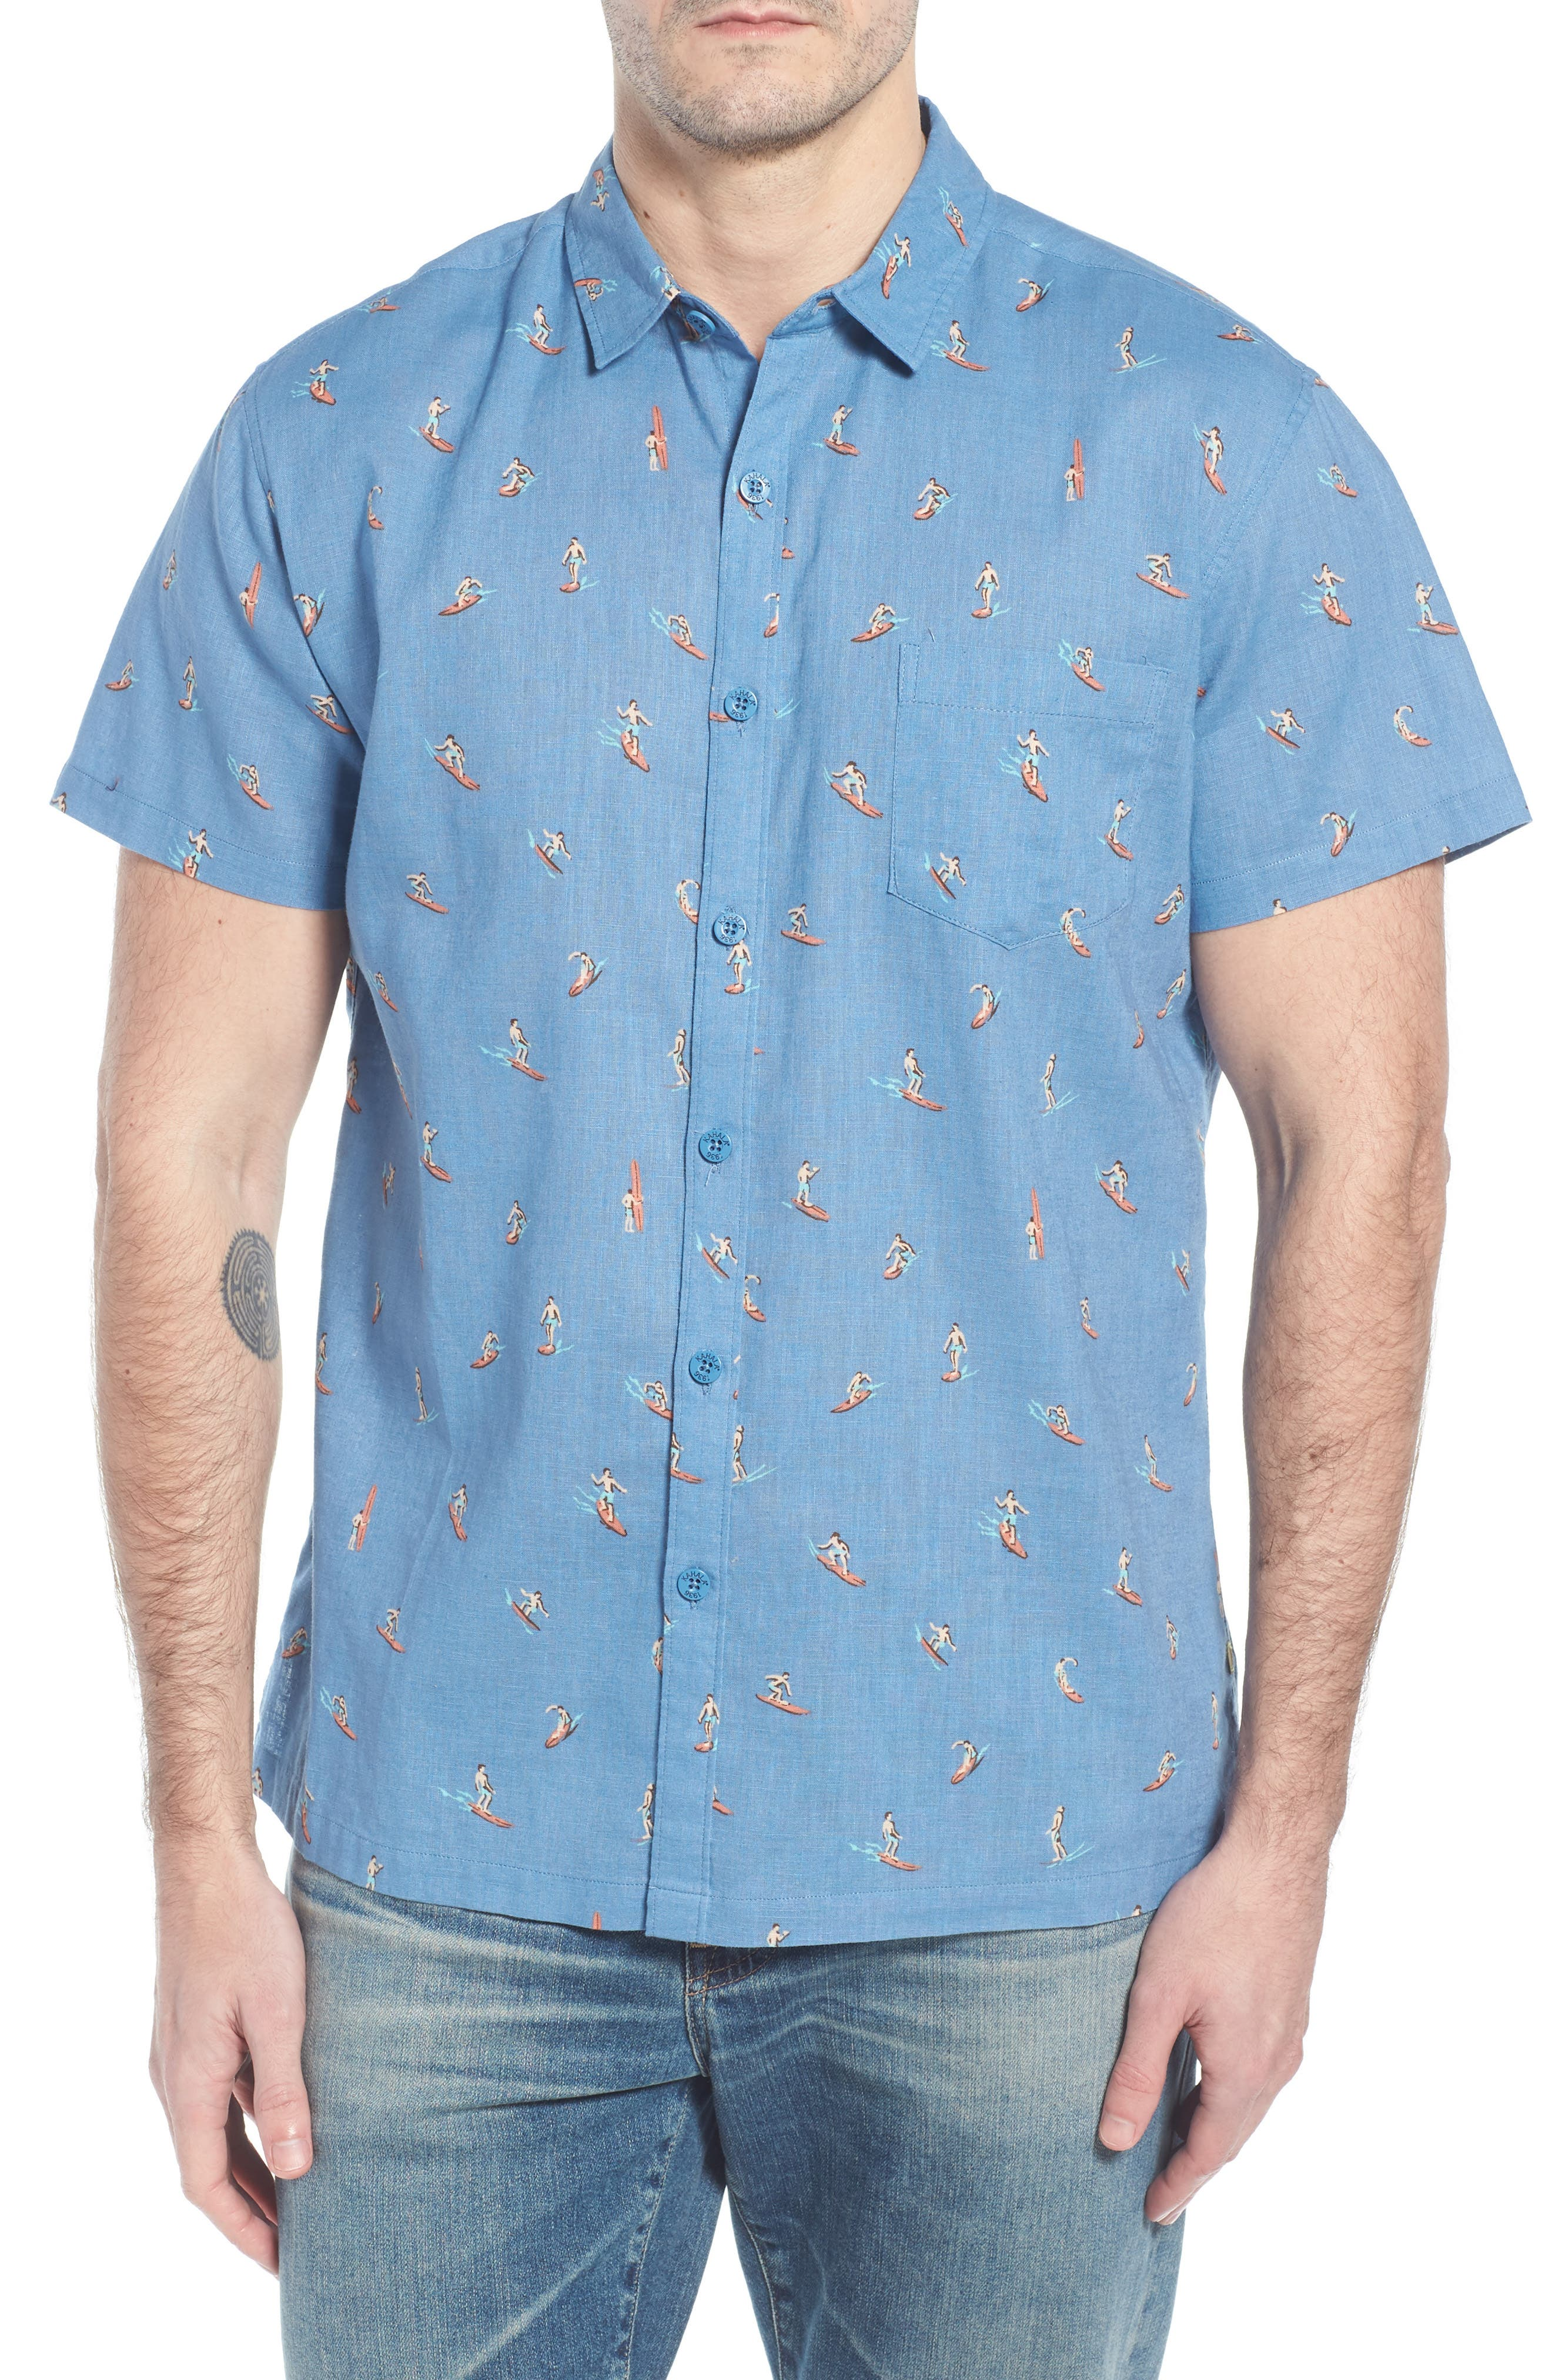 Waveriders Trim Fit Print Sport Shirt,                             Main thumbnail 1, color,                             Chambray